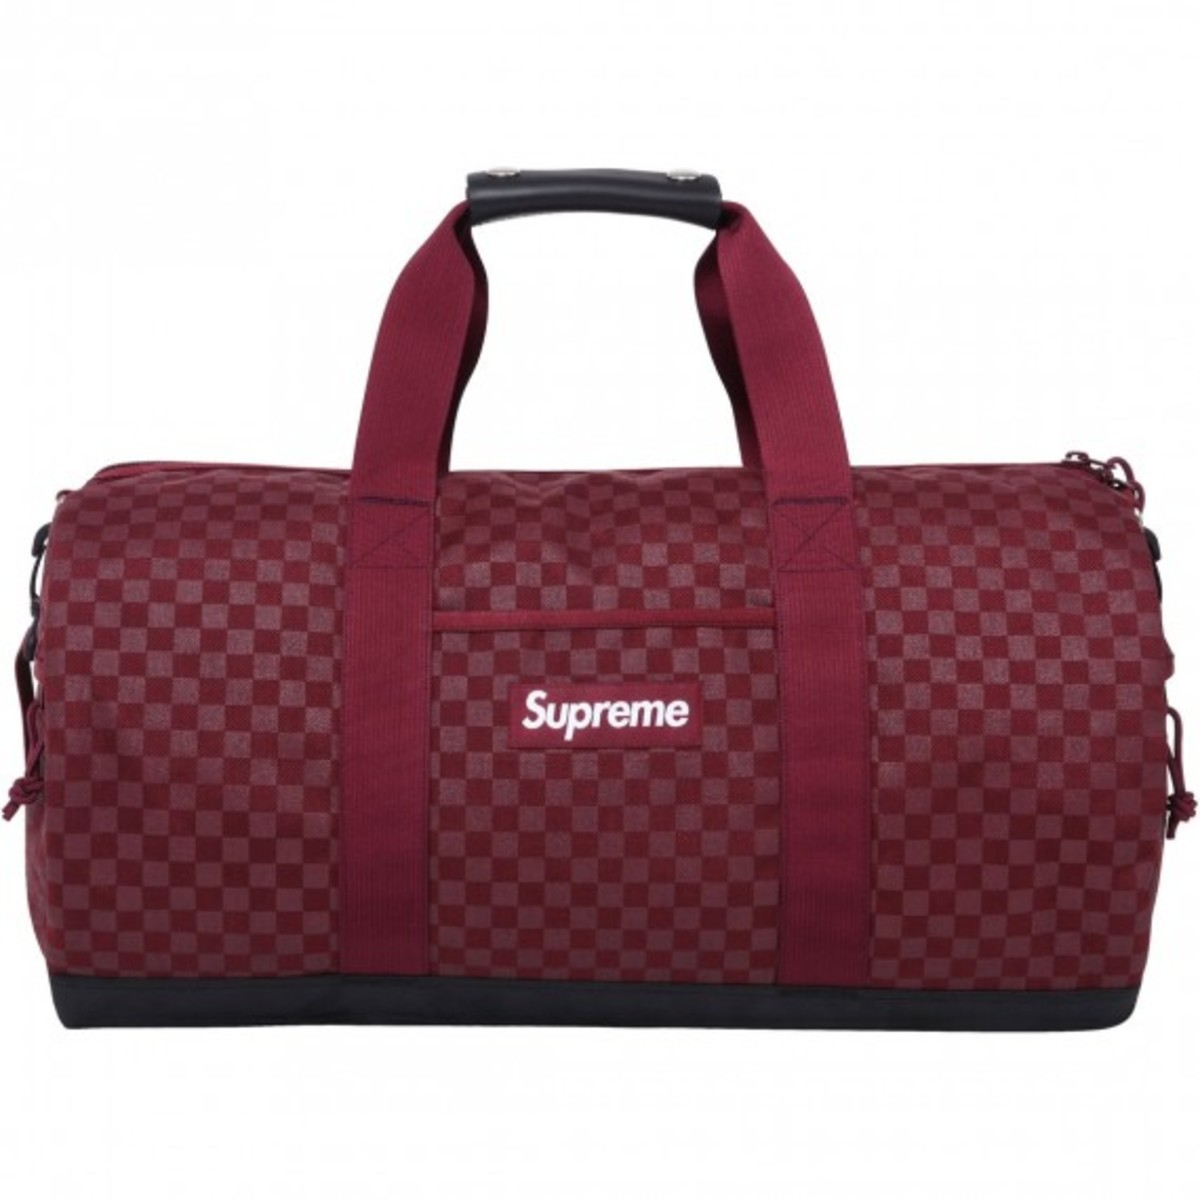 supreme-fall-winter-2011-collection-available-now-26